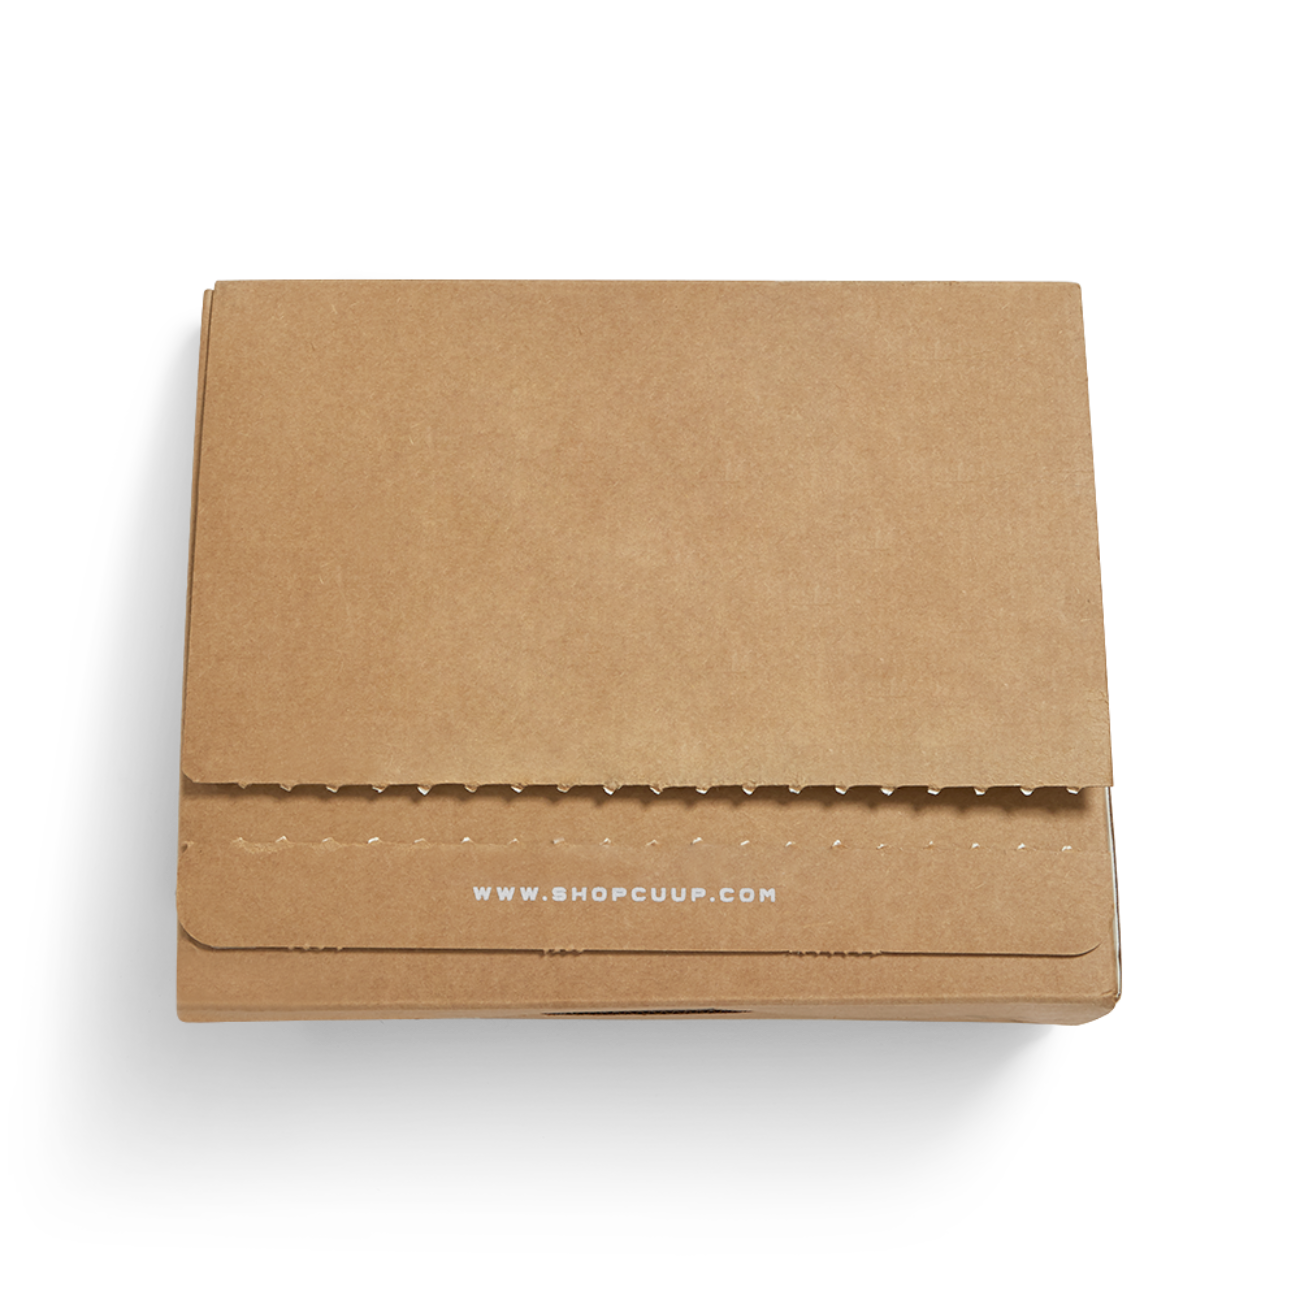 Custom corrugated mailer box with tear strip, adhesive strip. Flexography on natural kraft liner.